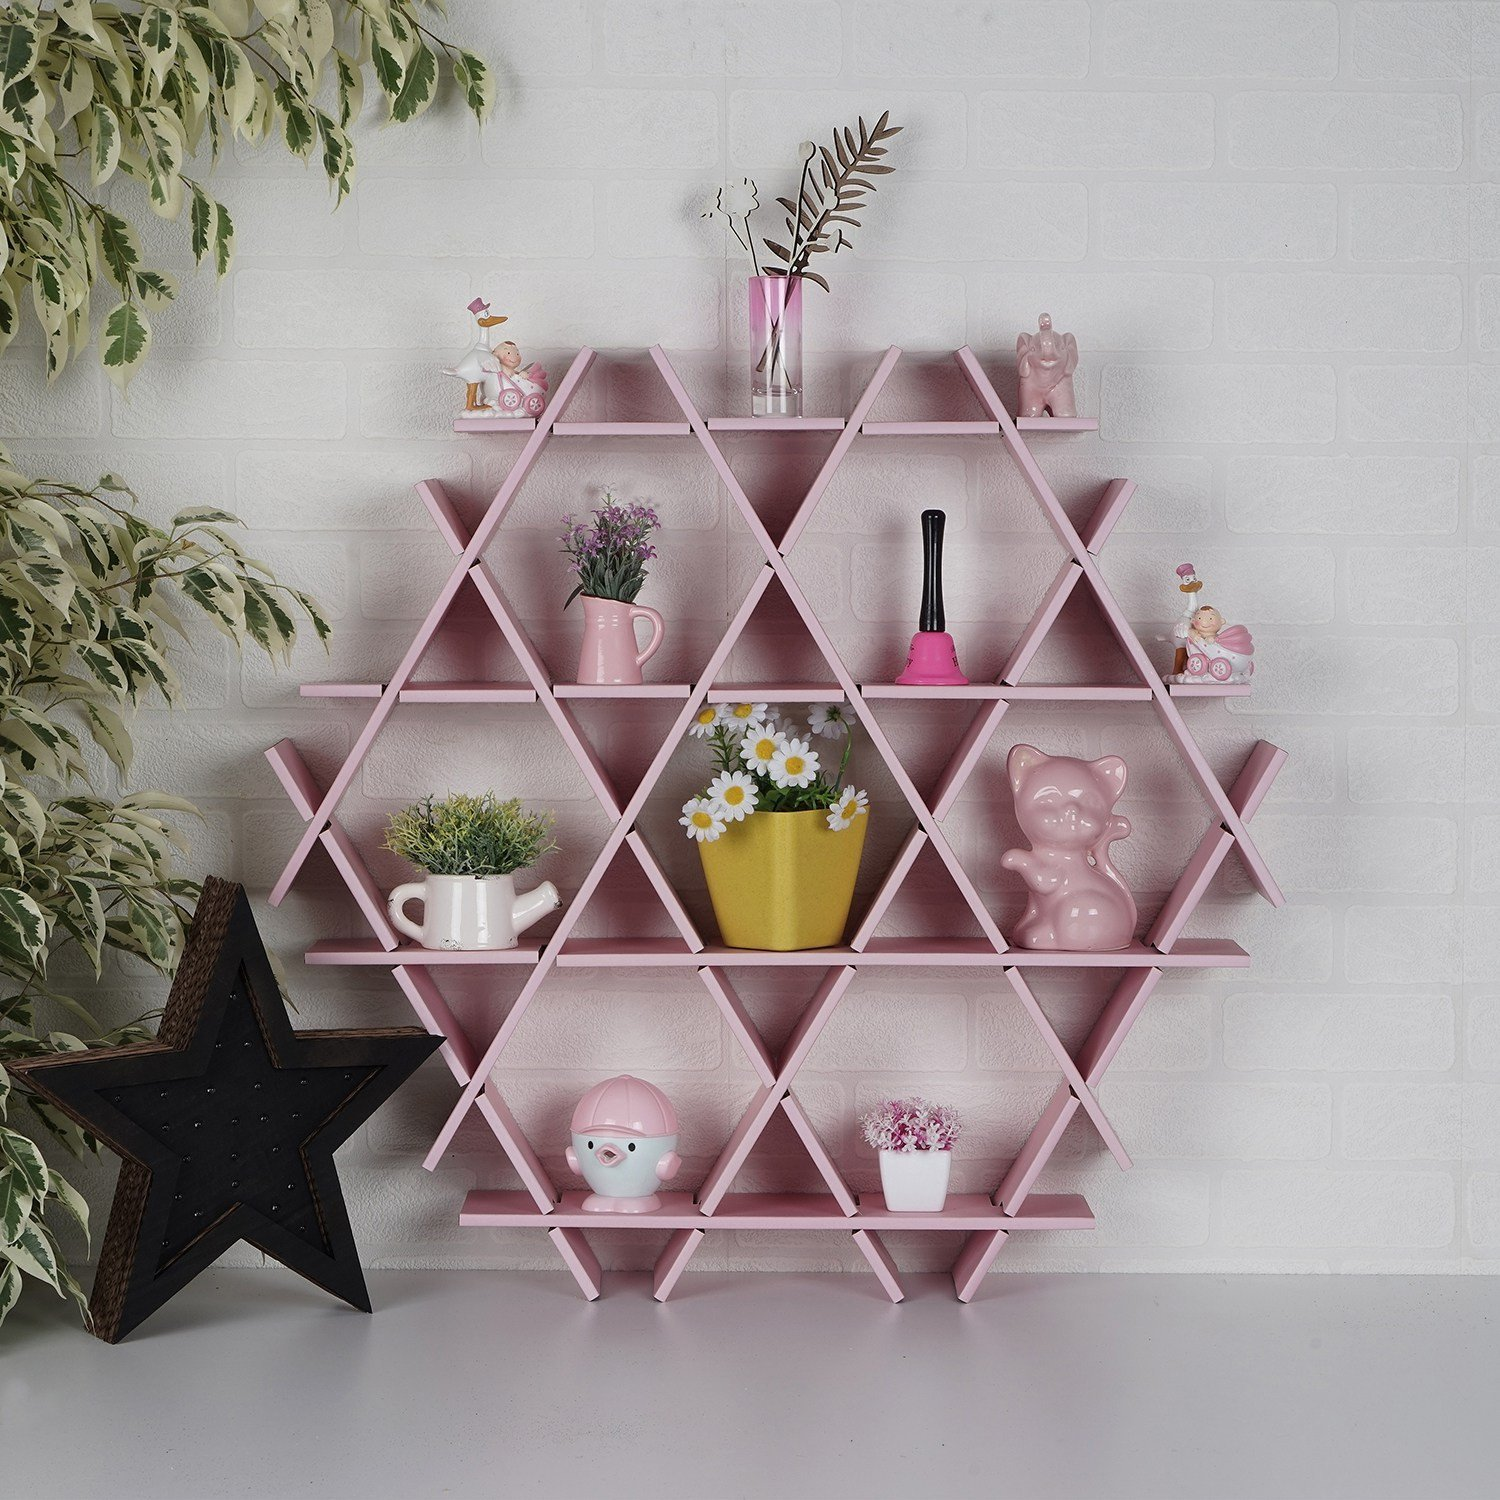 LaModaHome Cardboard Shelf 100% Corrugated Cardboard (27.6'' x 26.4'' x 4.3'') Pink Triangle Hexagon Decorative Design Pretty Storage Shelf Multi Purpose by LaModaHome